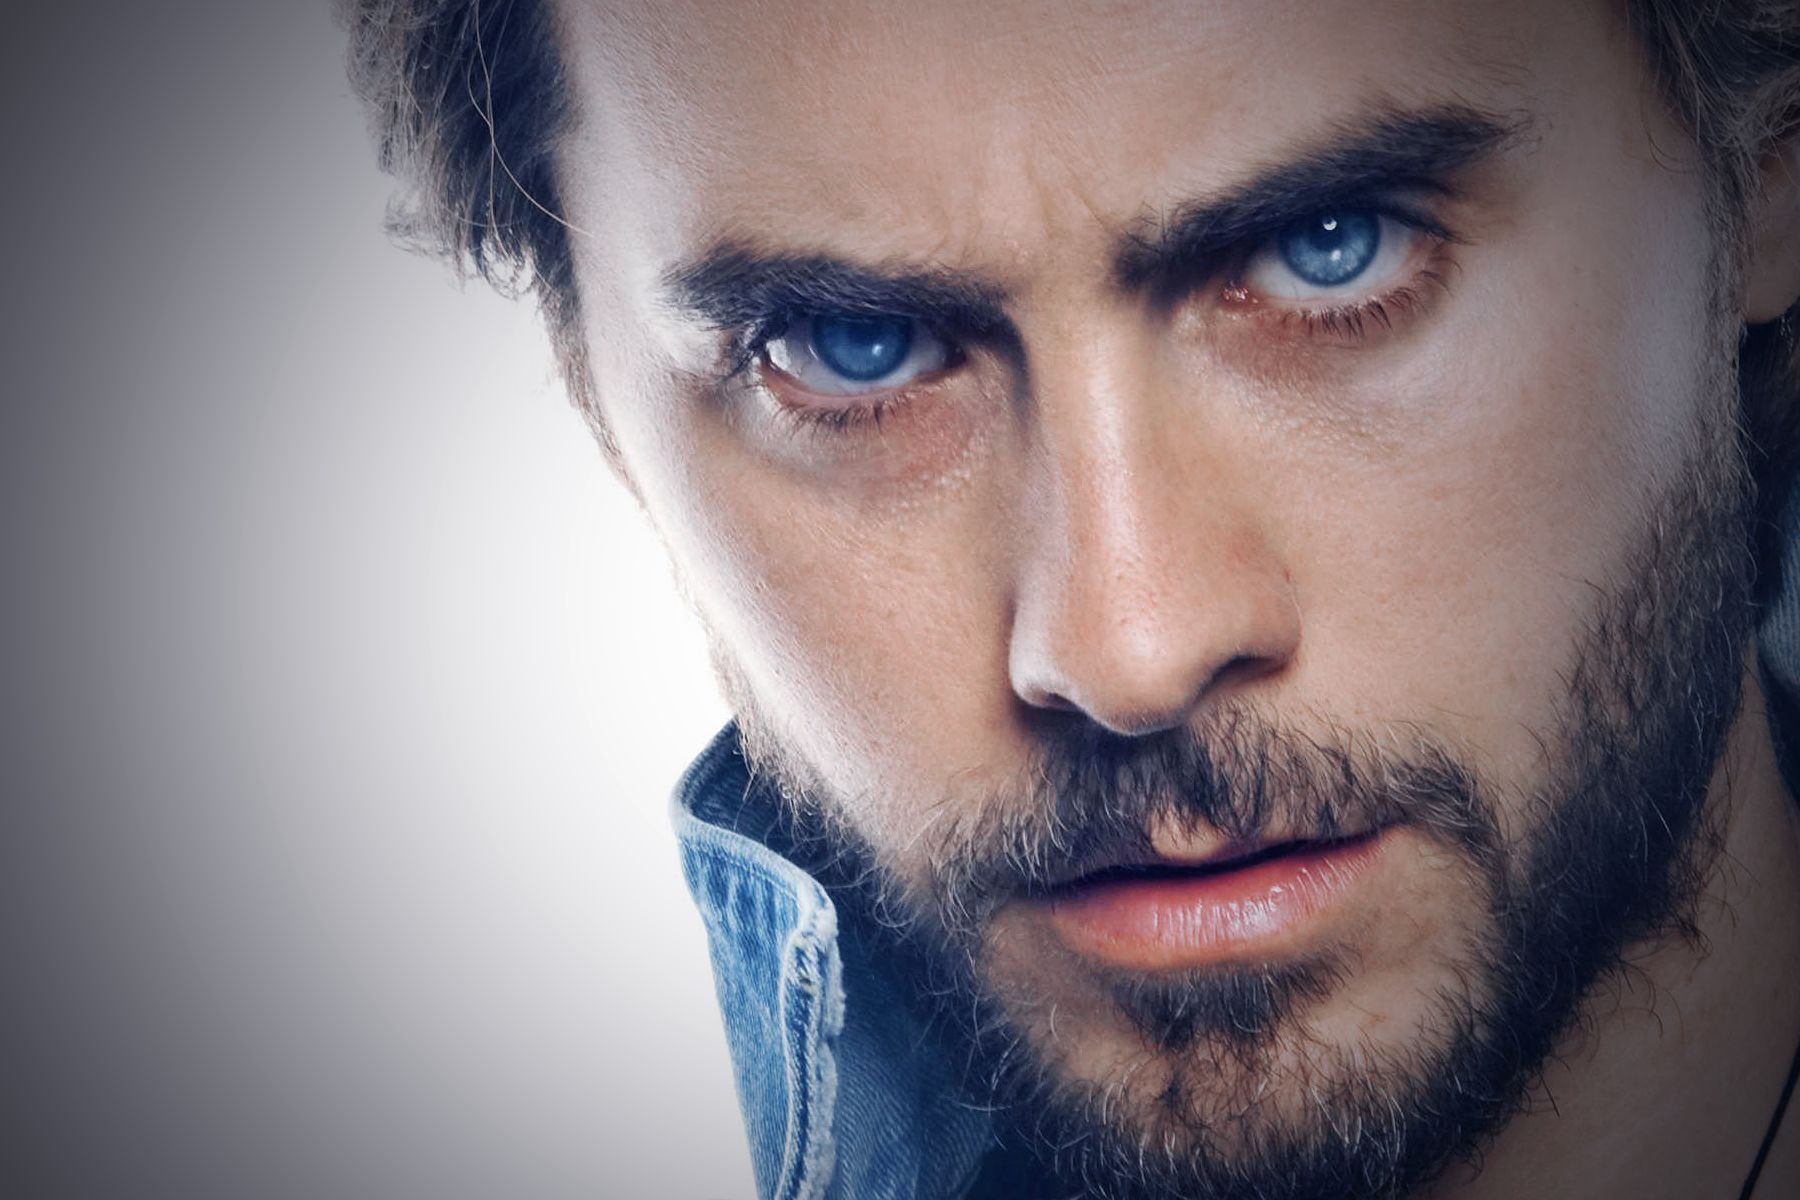 Jared Leto Instagrams A Breathtaking Video To Express His Love For ...